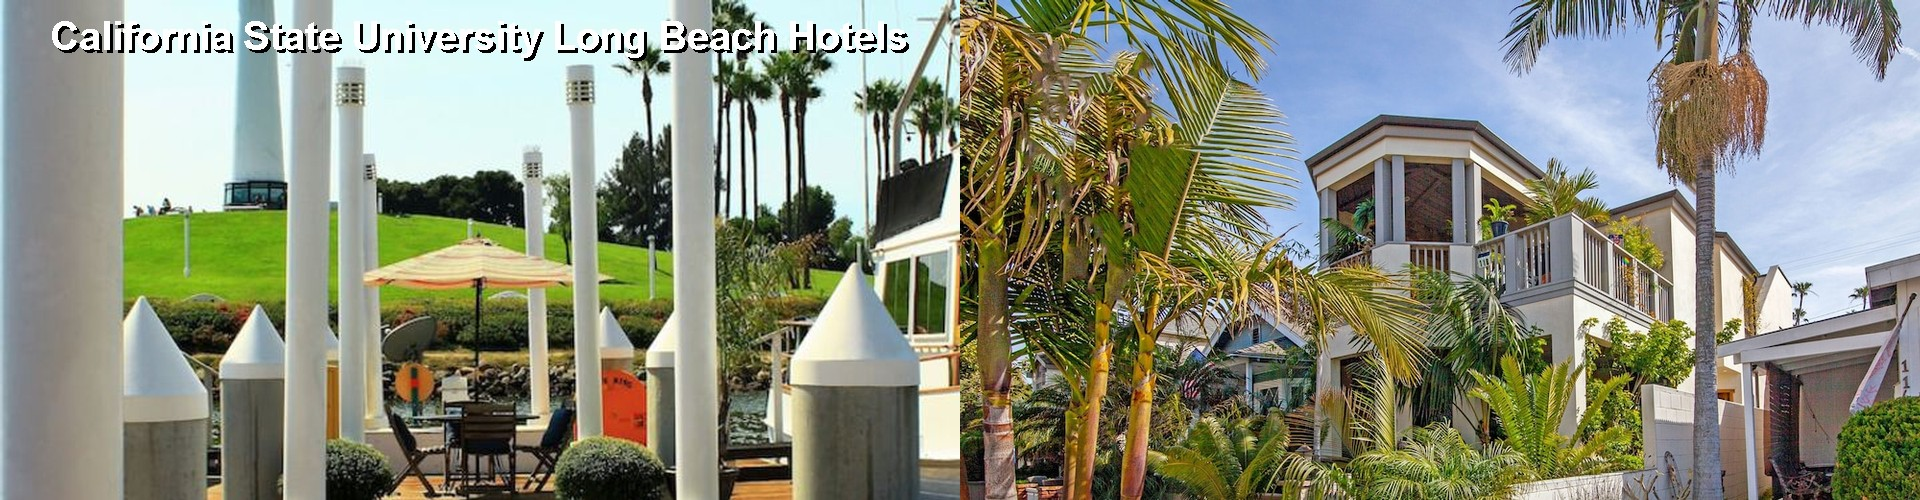 58 Hotels Near California State University Long Beach Ca